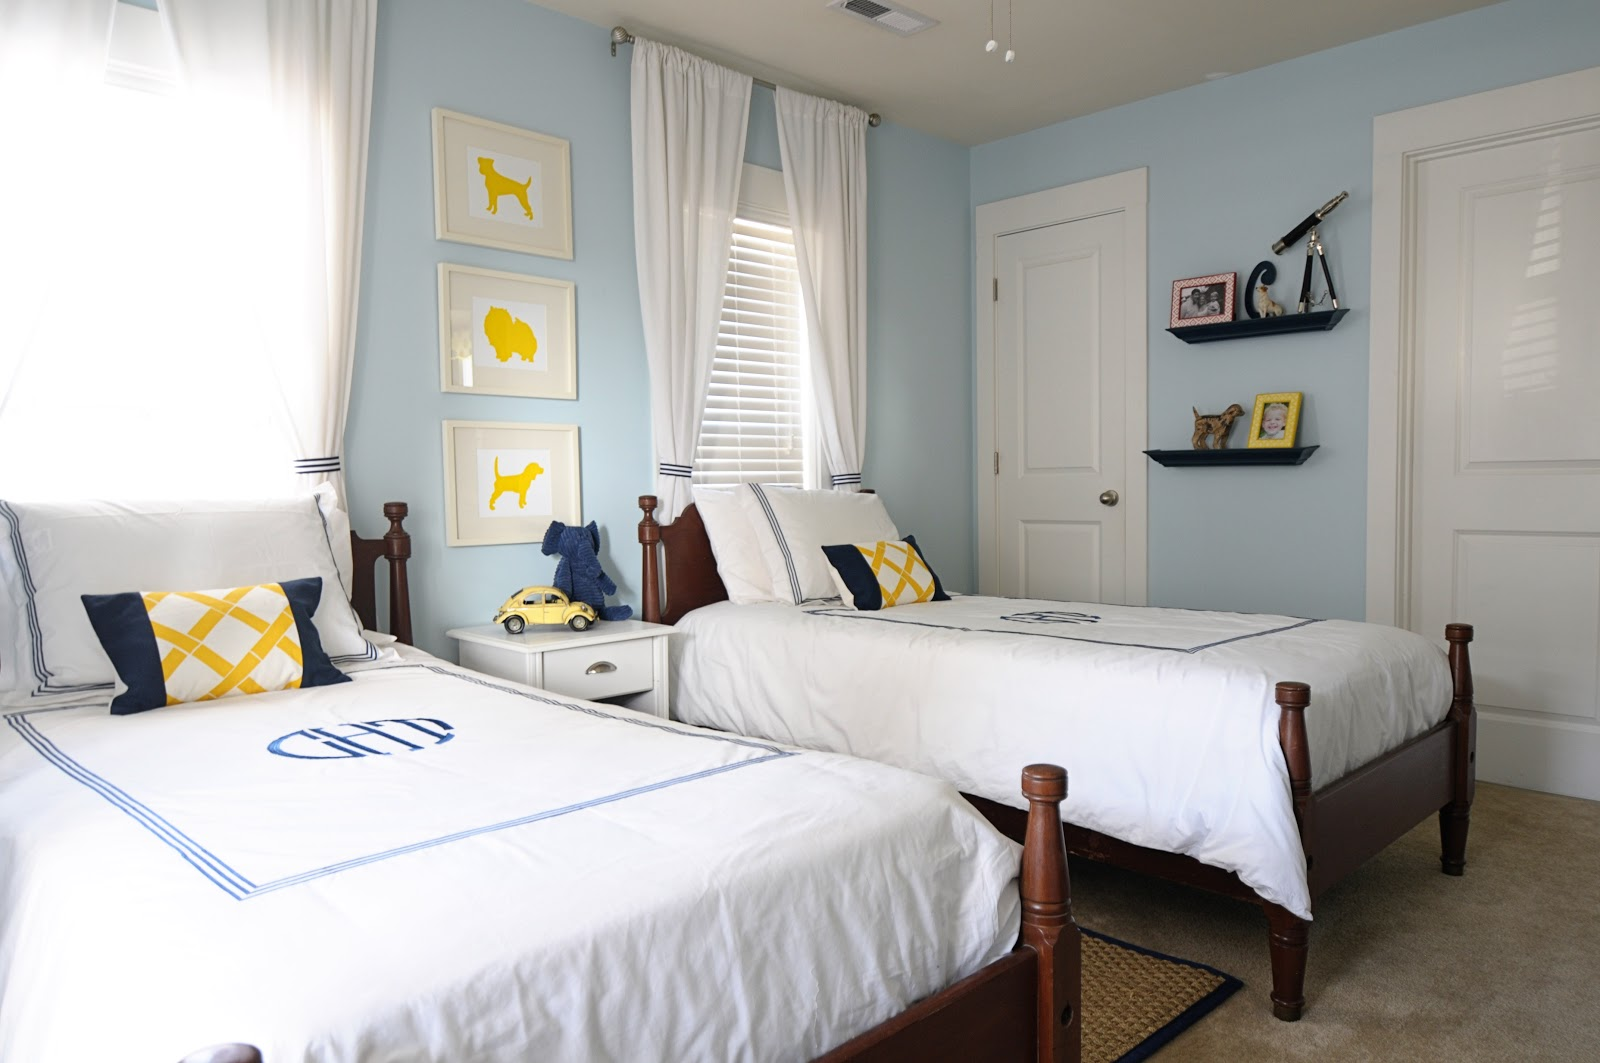 Tiny Bedroom Tour Courtney S Room: Hanging With The Hewitts: Home Tour